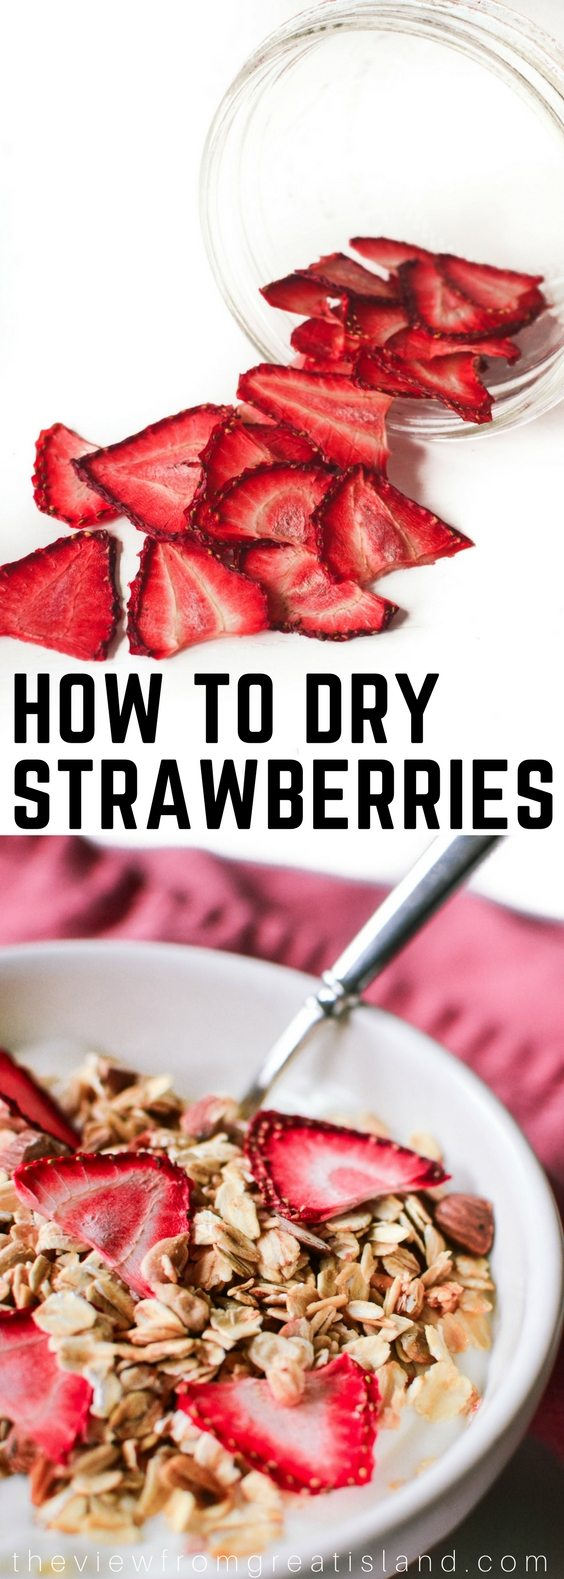 How to Dry Strawberries ~ once you've gobbled up your fill of fresh strawberries this season, consider drying them ~ dehydrating intensifies the flavor of the berries like nothing else! #driedfruit #dehydrating #strawberries #berries #snack #healthy #preserving #spring